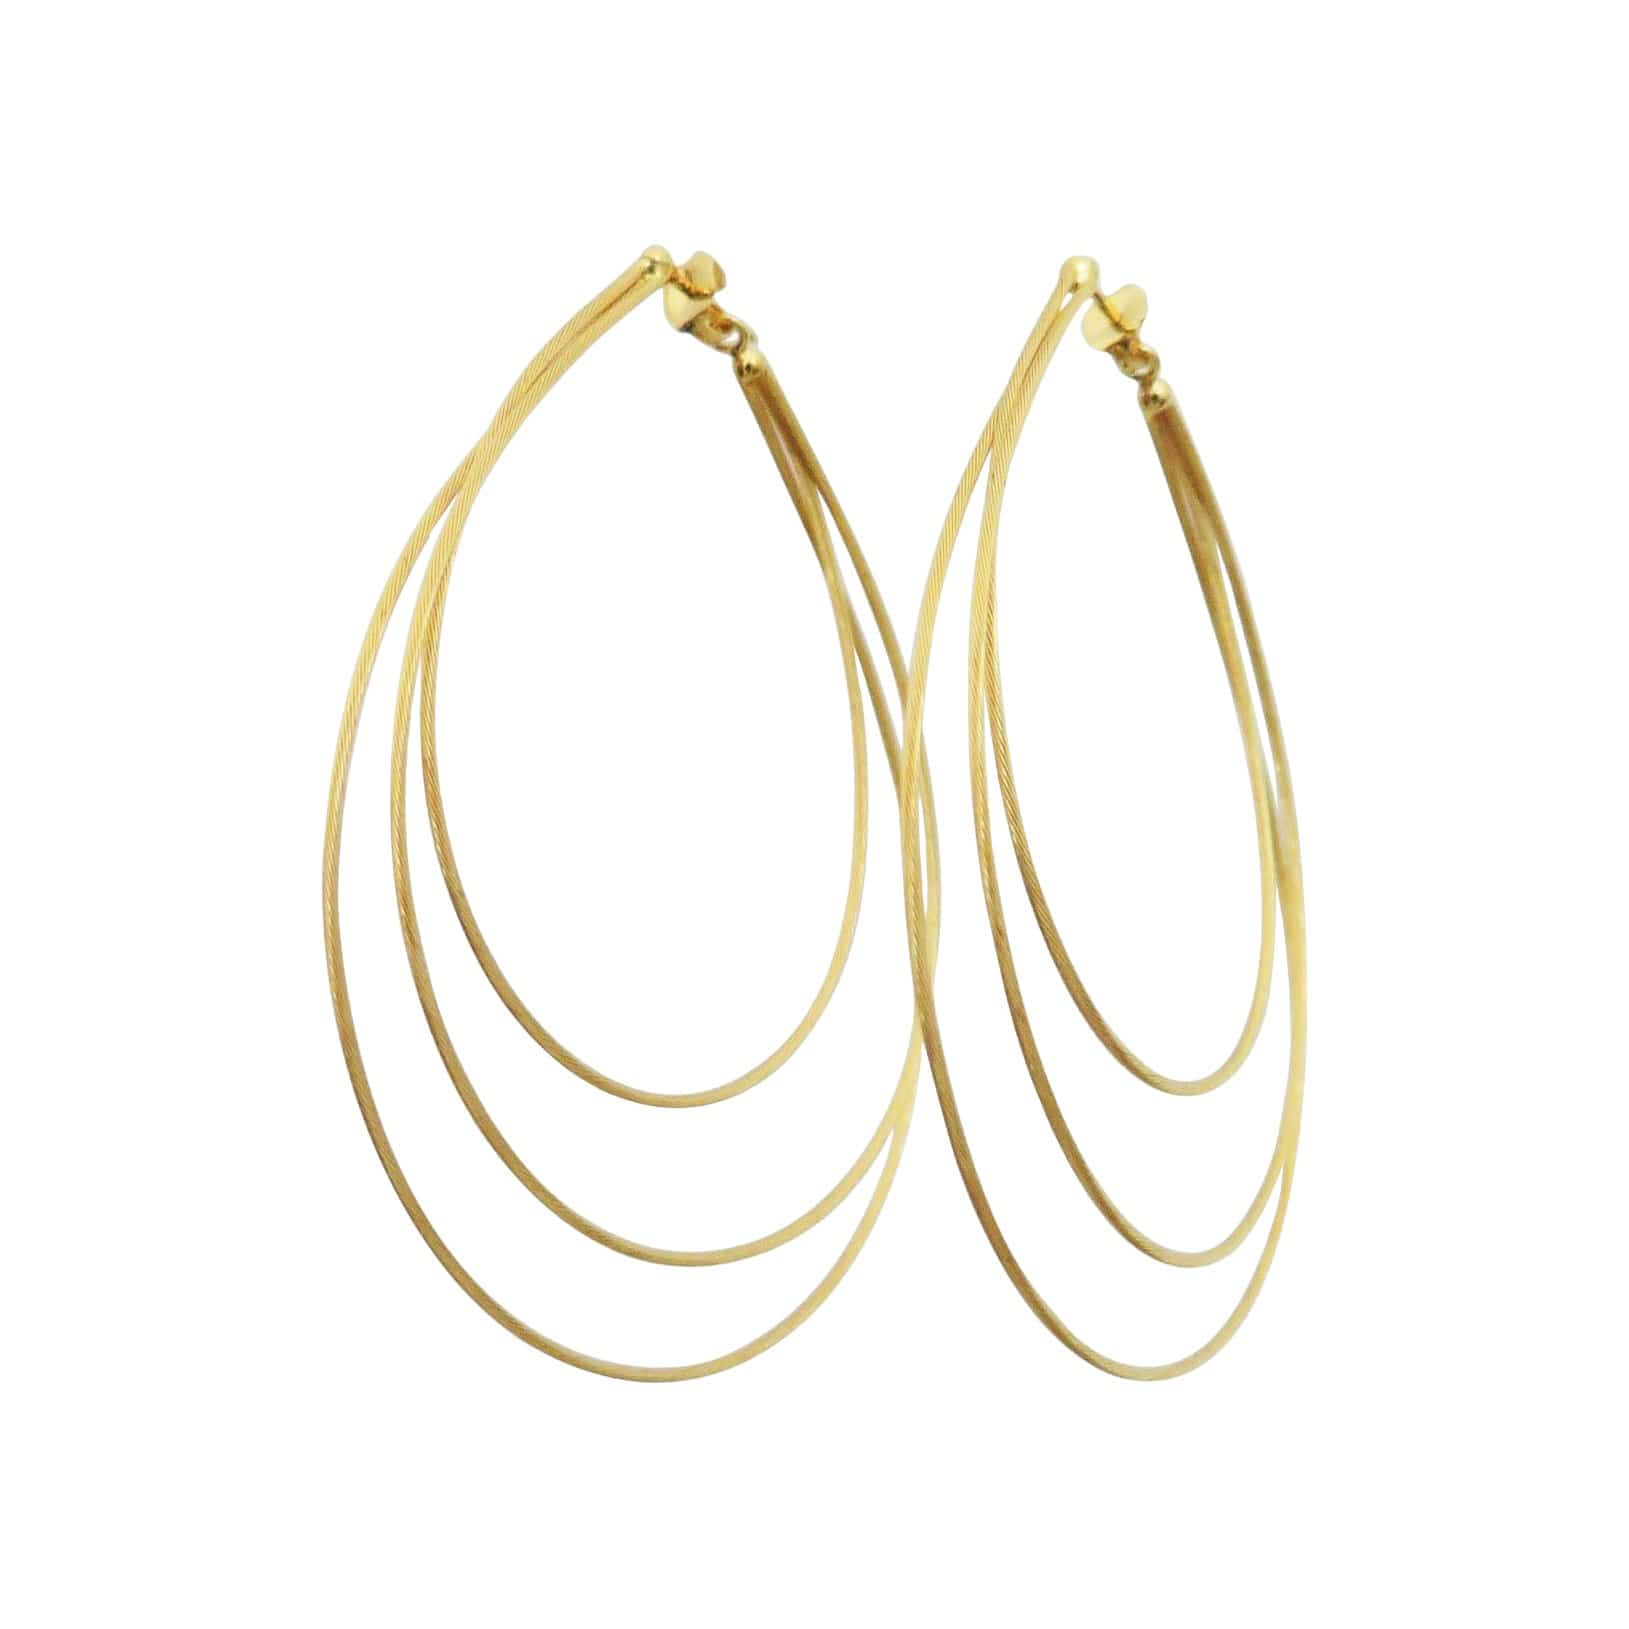 Ex Ovo Earrings Small / Gold Vermeil Multi Cable Earrings